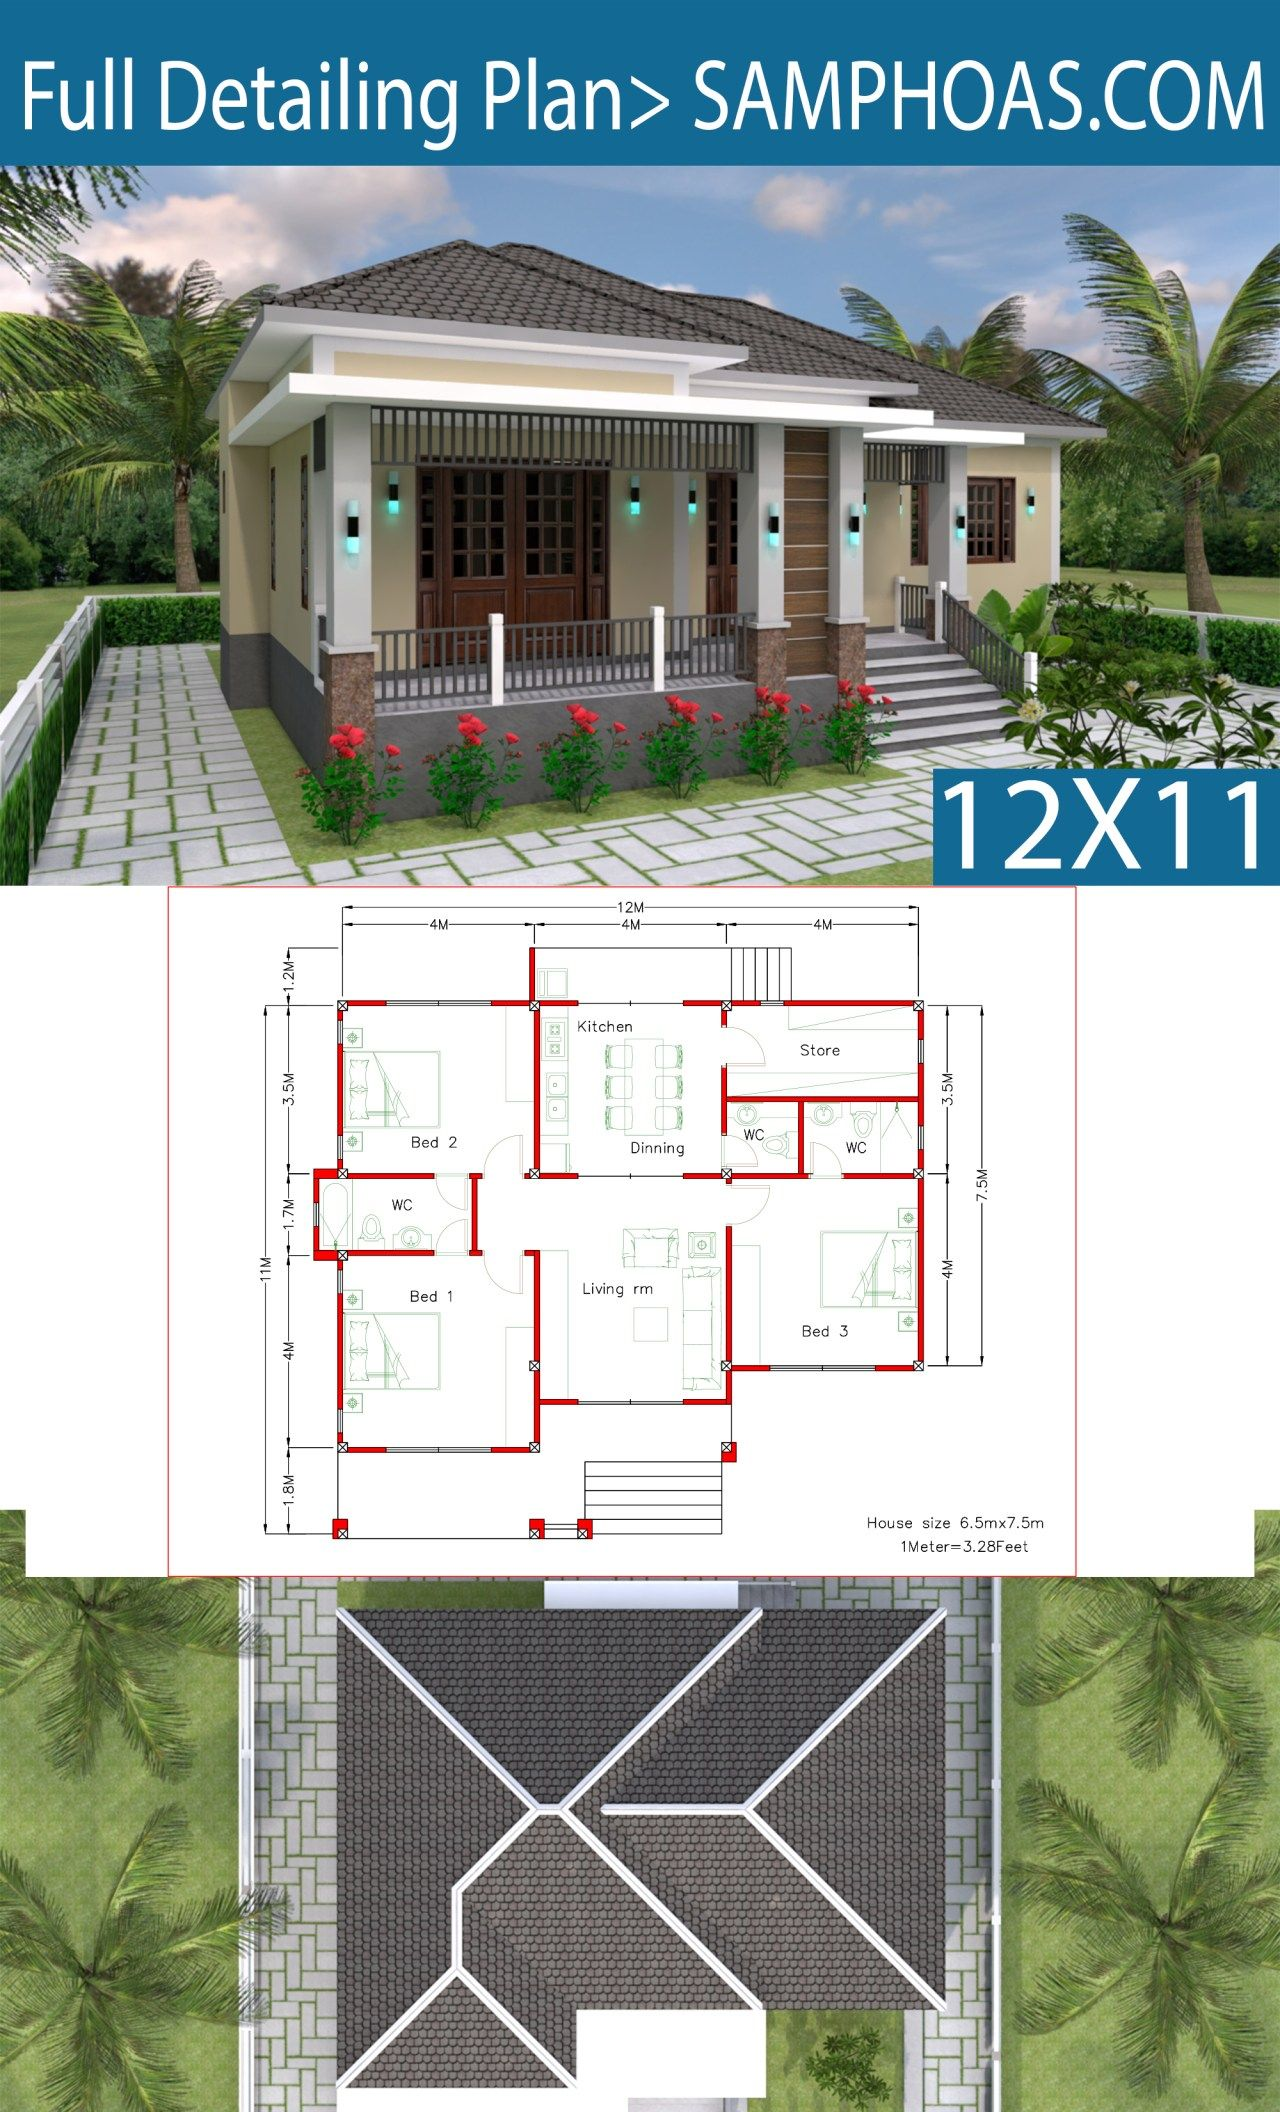 Interior Design Plan 12x11m With Full Plan 3beds Samphoas Plan Interior Design Plan Simple House Design Building Plans House